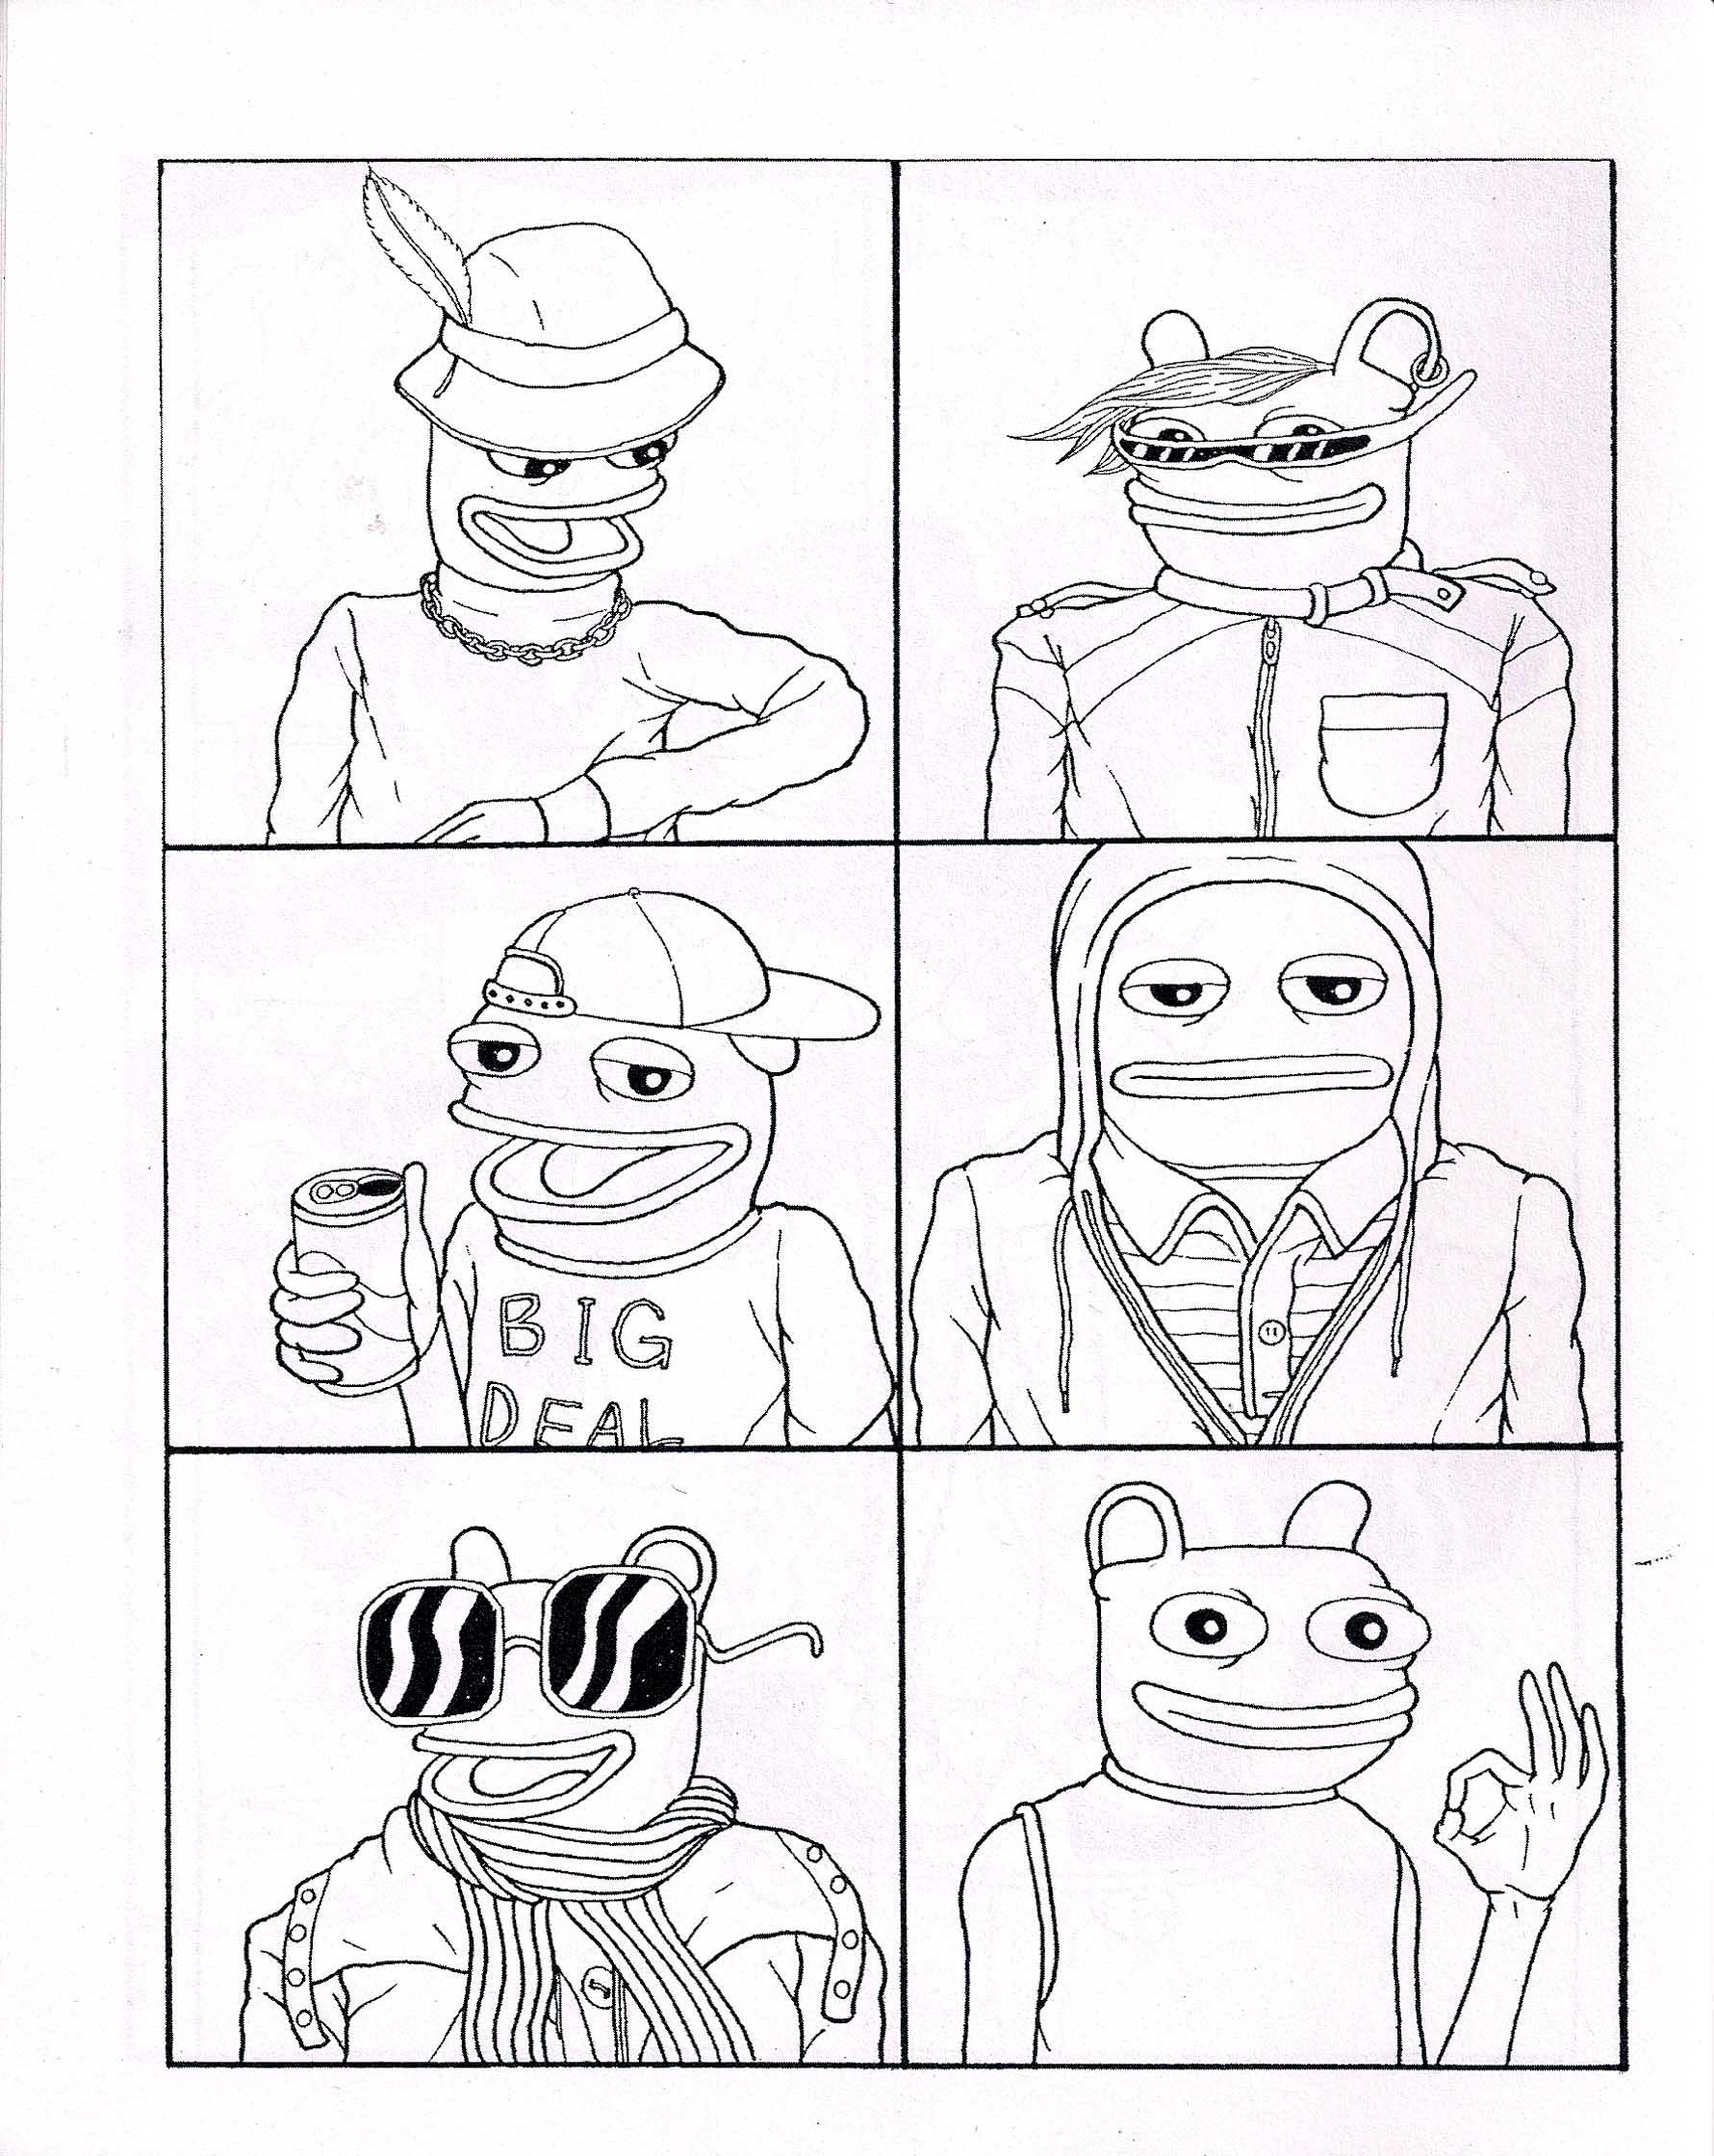 Pepe Frog Drawing